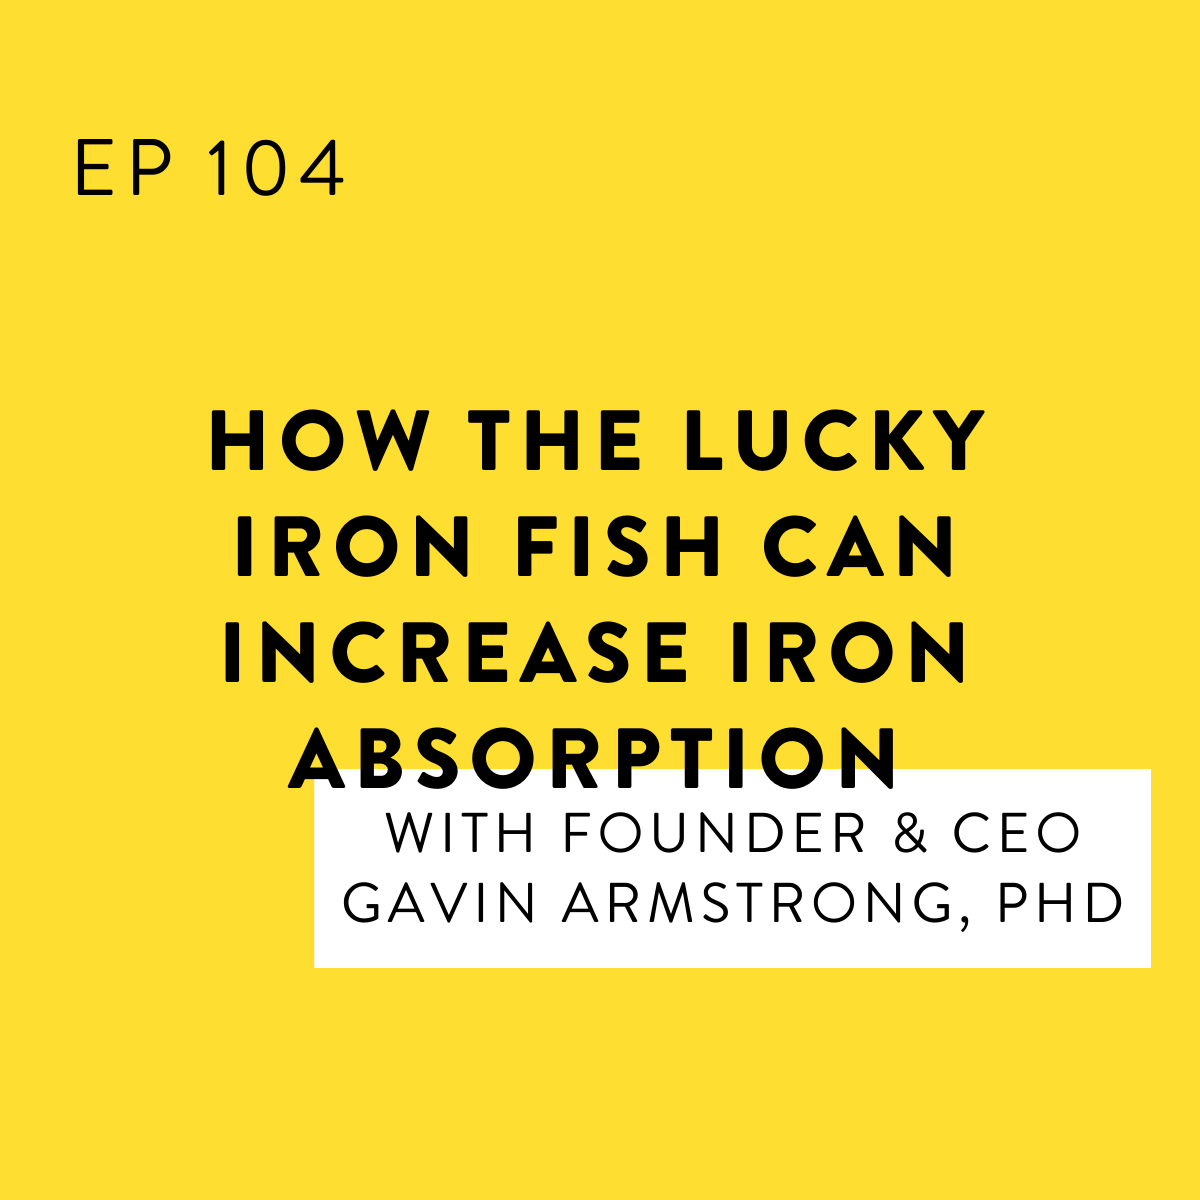 How the Lucky Iron Fish Can Increase Iron Absorption with Founder & CEO Gavin Armstrong, PhD